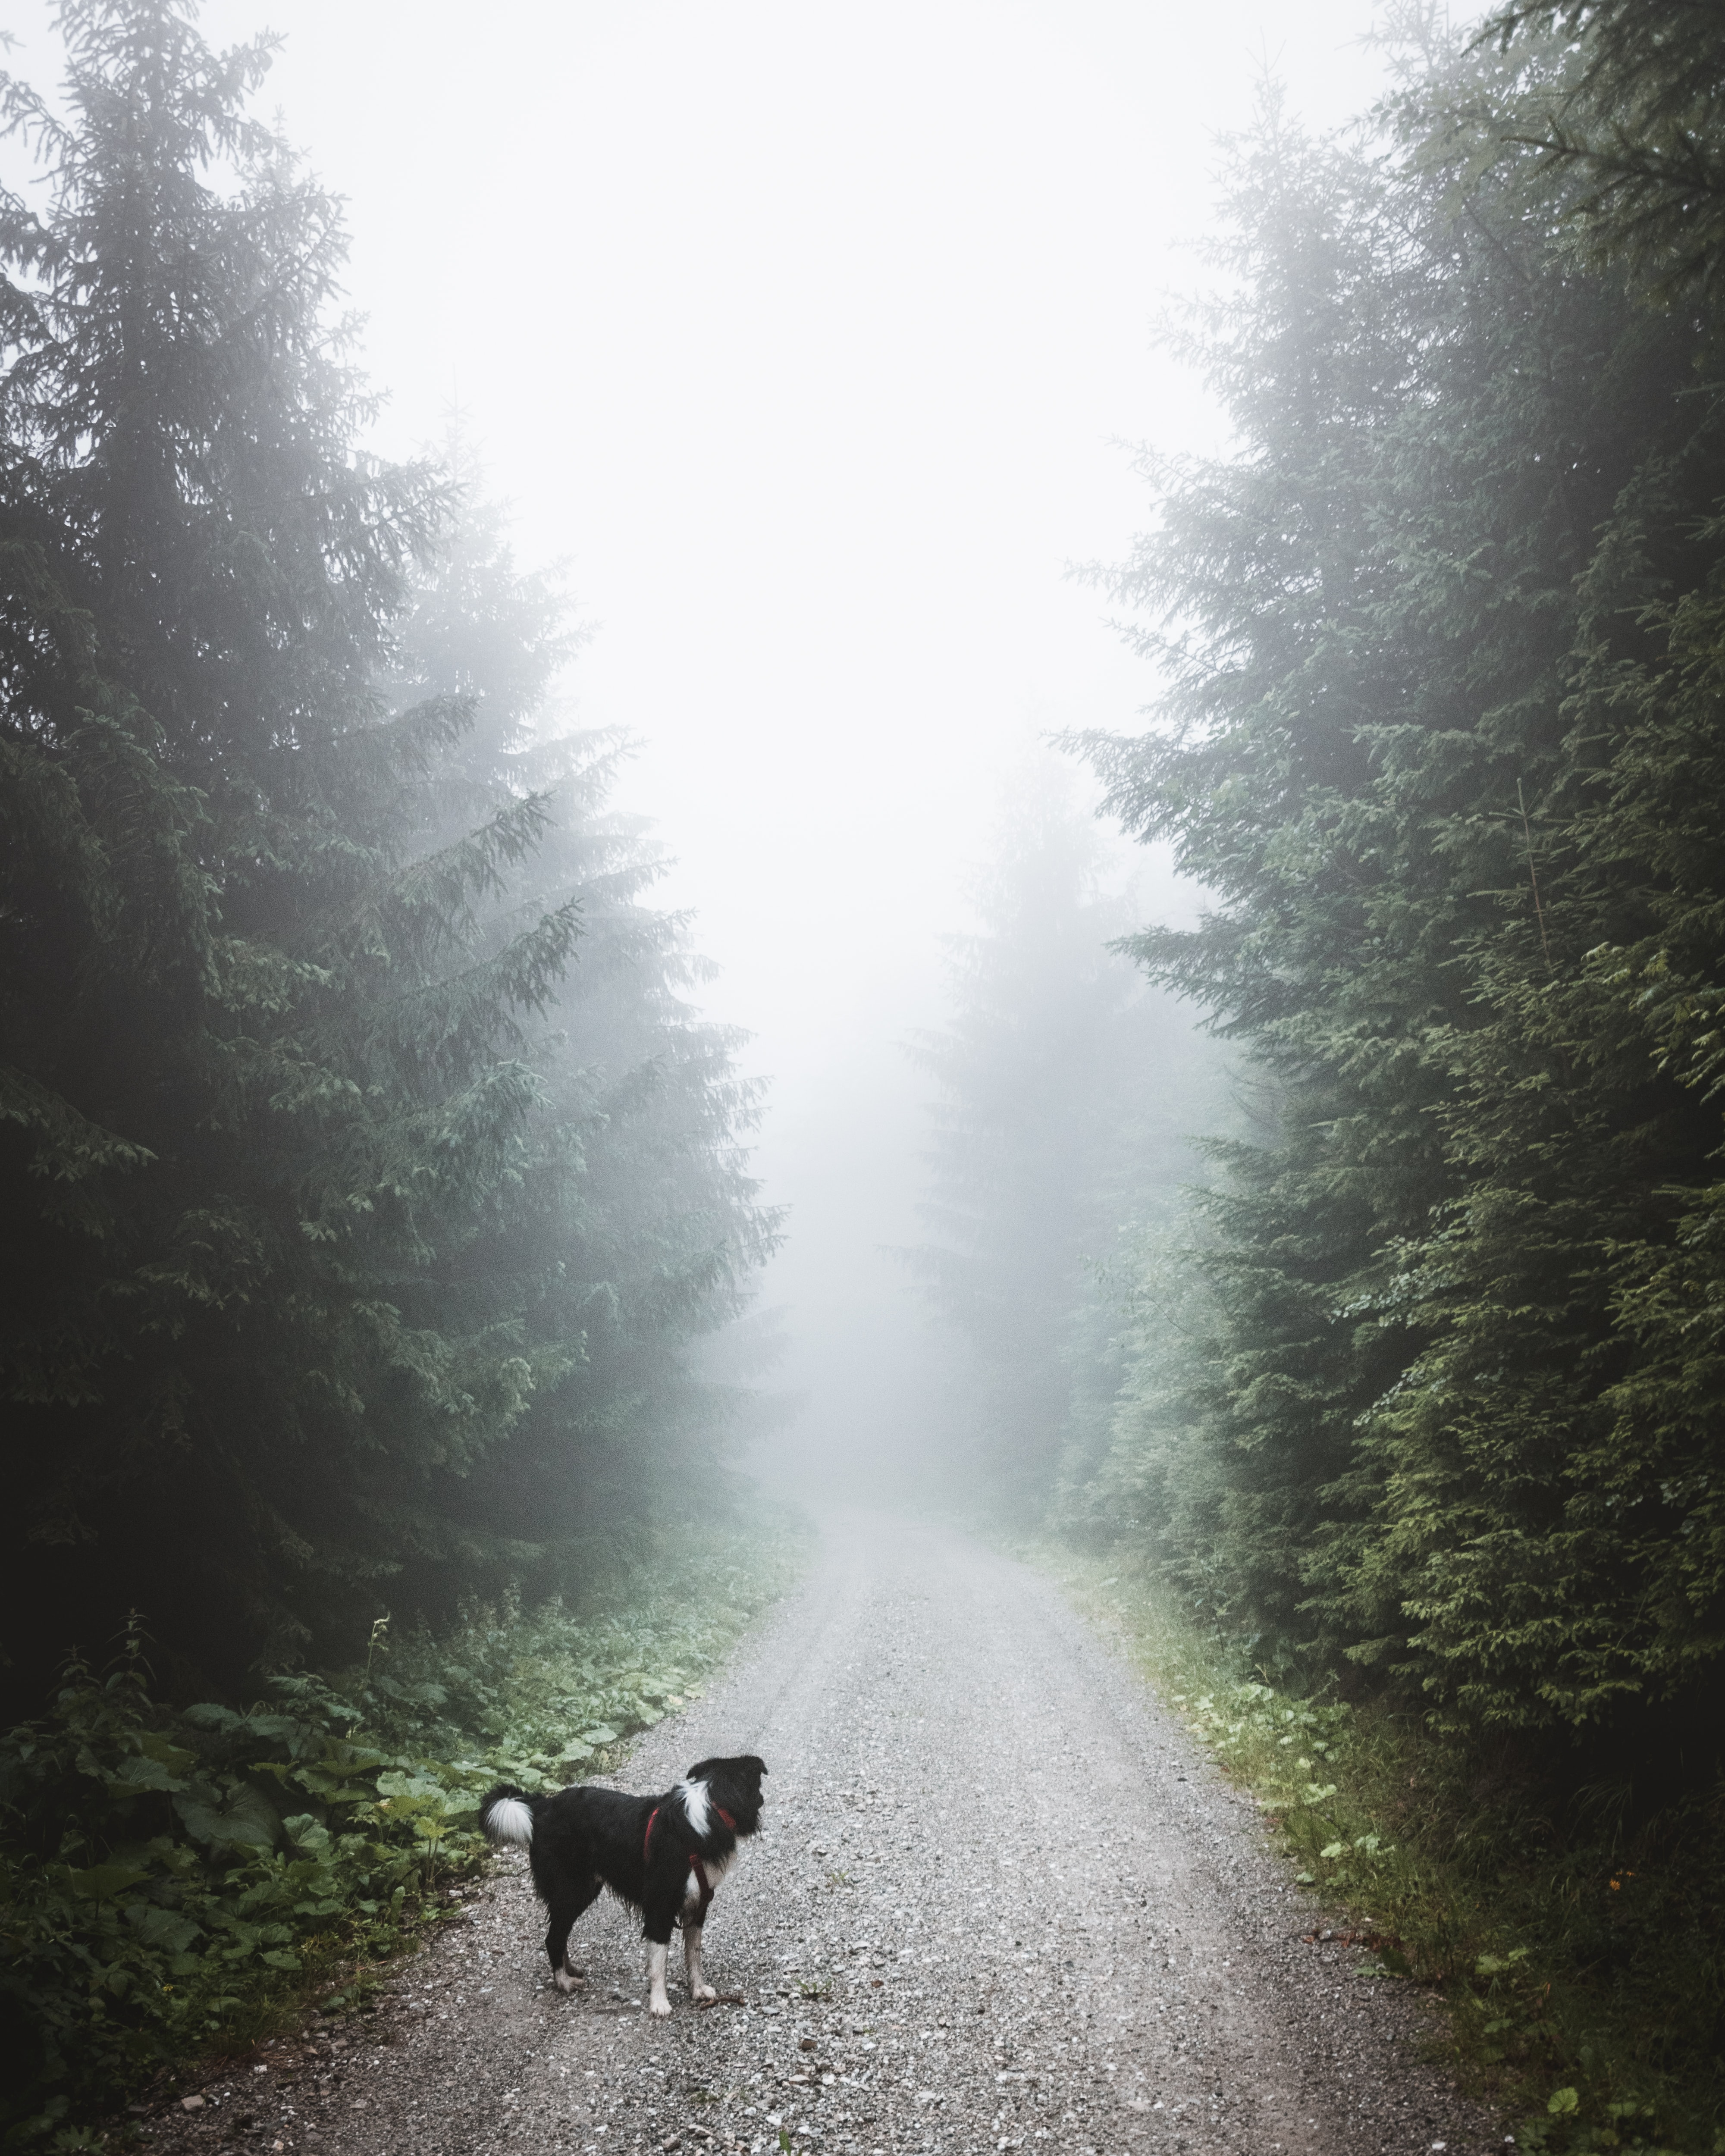 black and white dog standing on path surrounded by trees